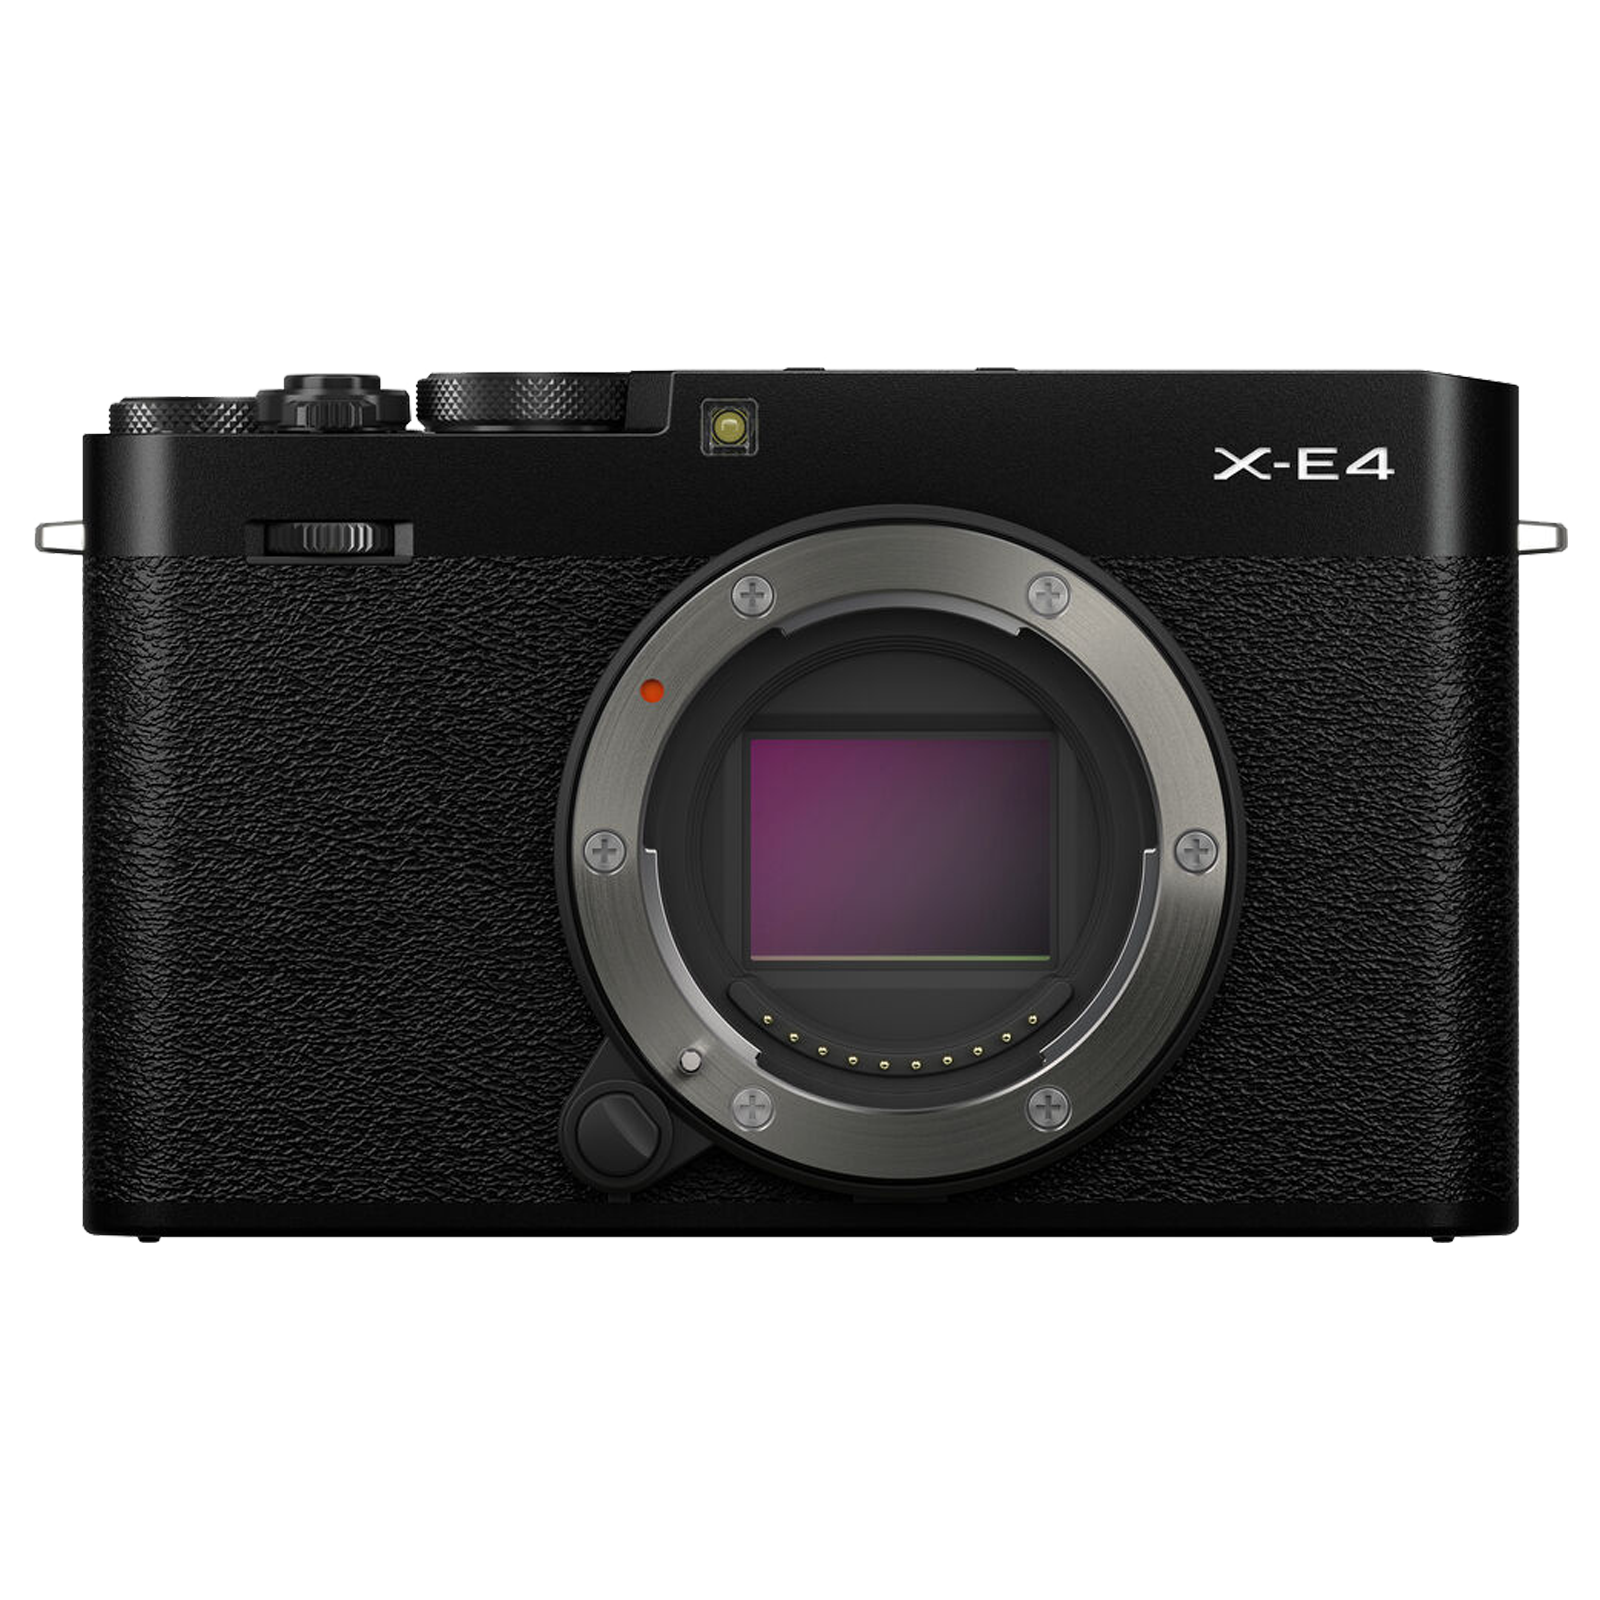 Fujifilm X-E4 26.1MP Mirrorless Camera (Electronic OLED Color Viewfinder, Black)_1